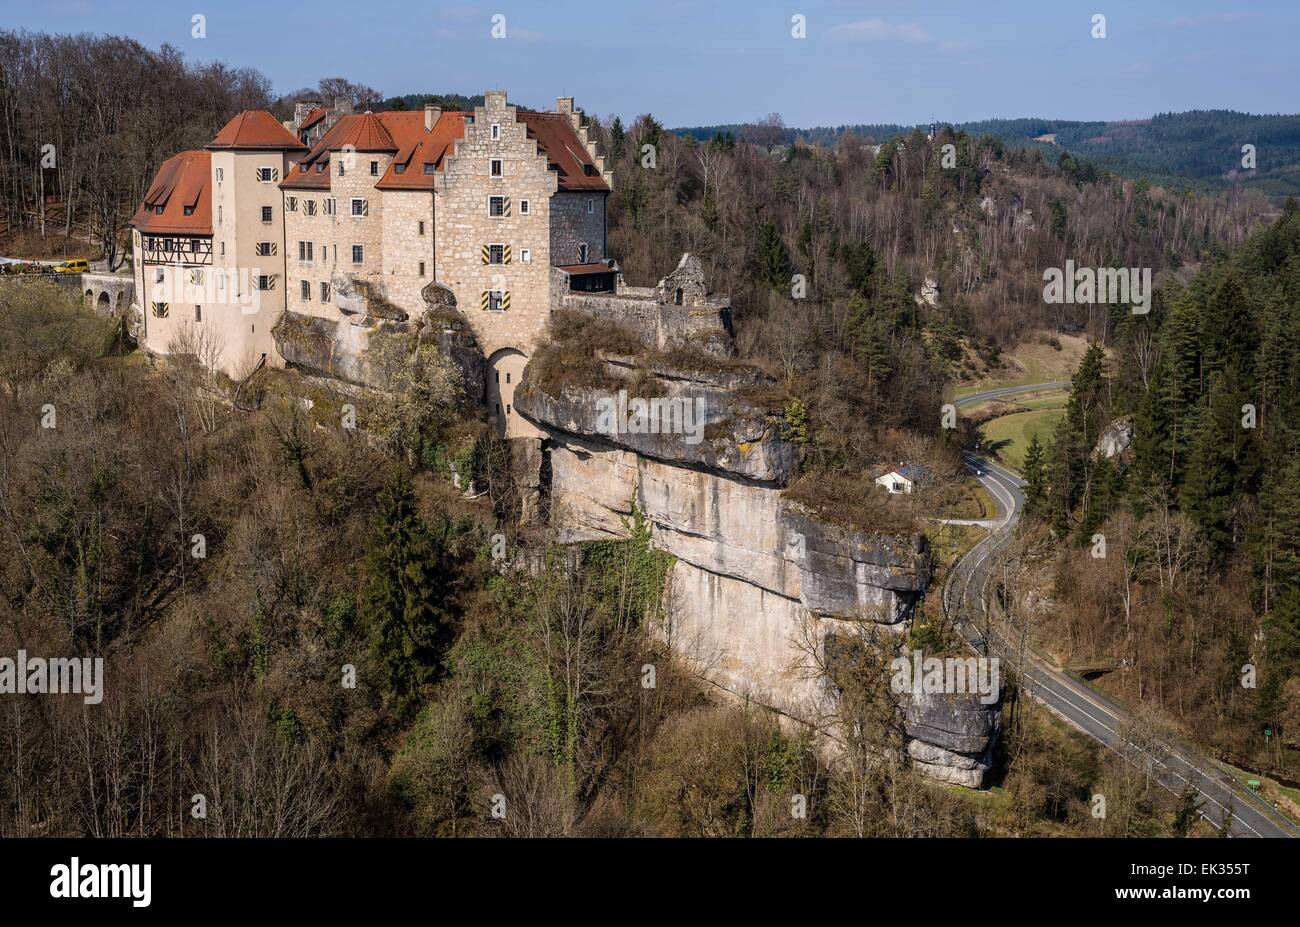 Raben, Germany. 28th Mar, 2015. Castle Rabenstein built in the High Middle Ages near Raben, Germany, 28 March 2015. - Stock Image